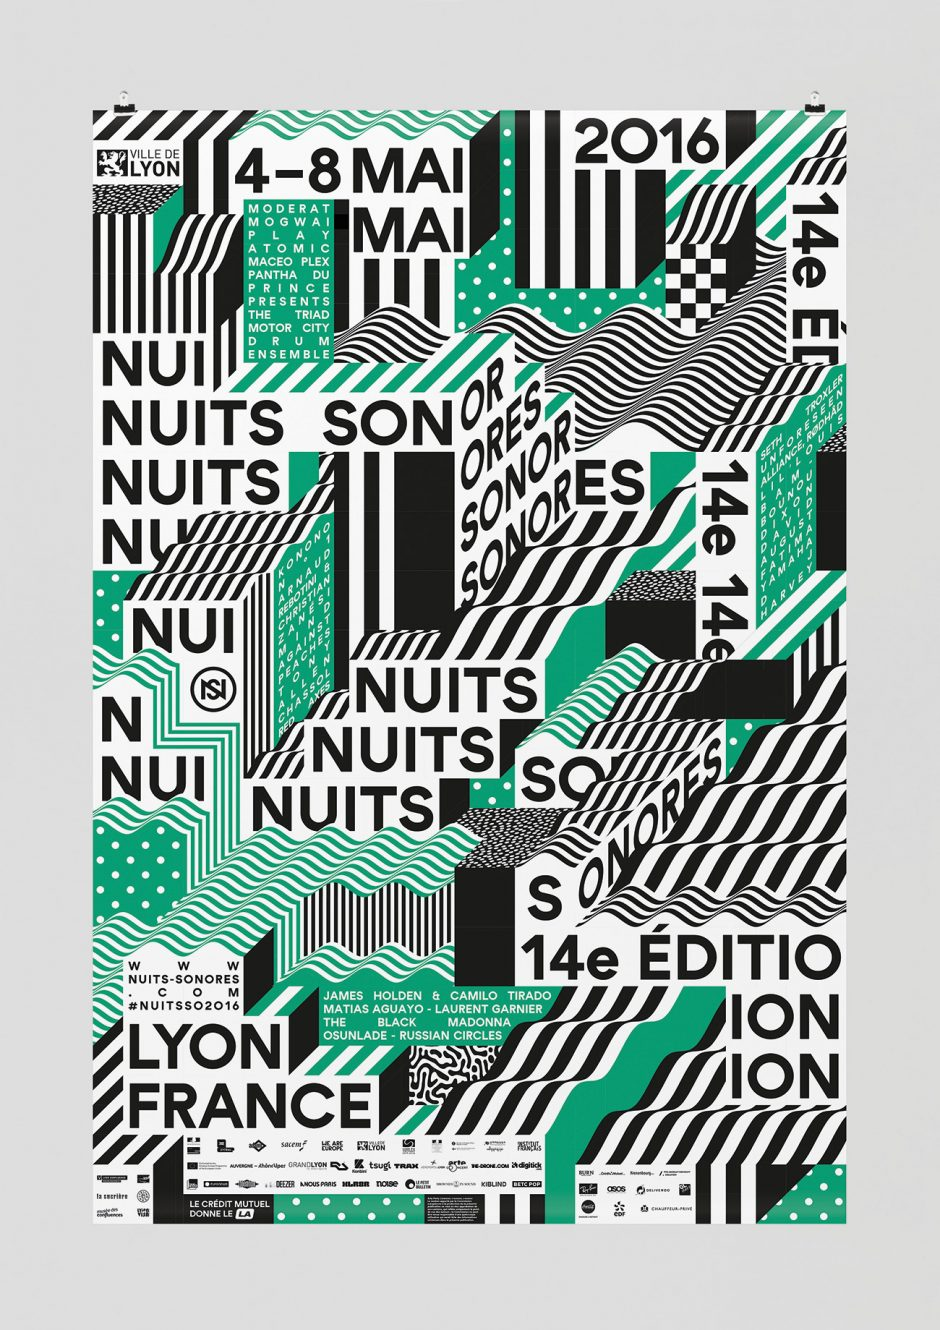 Nuits Sonore